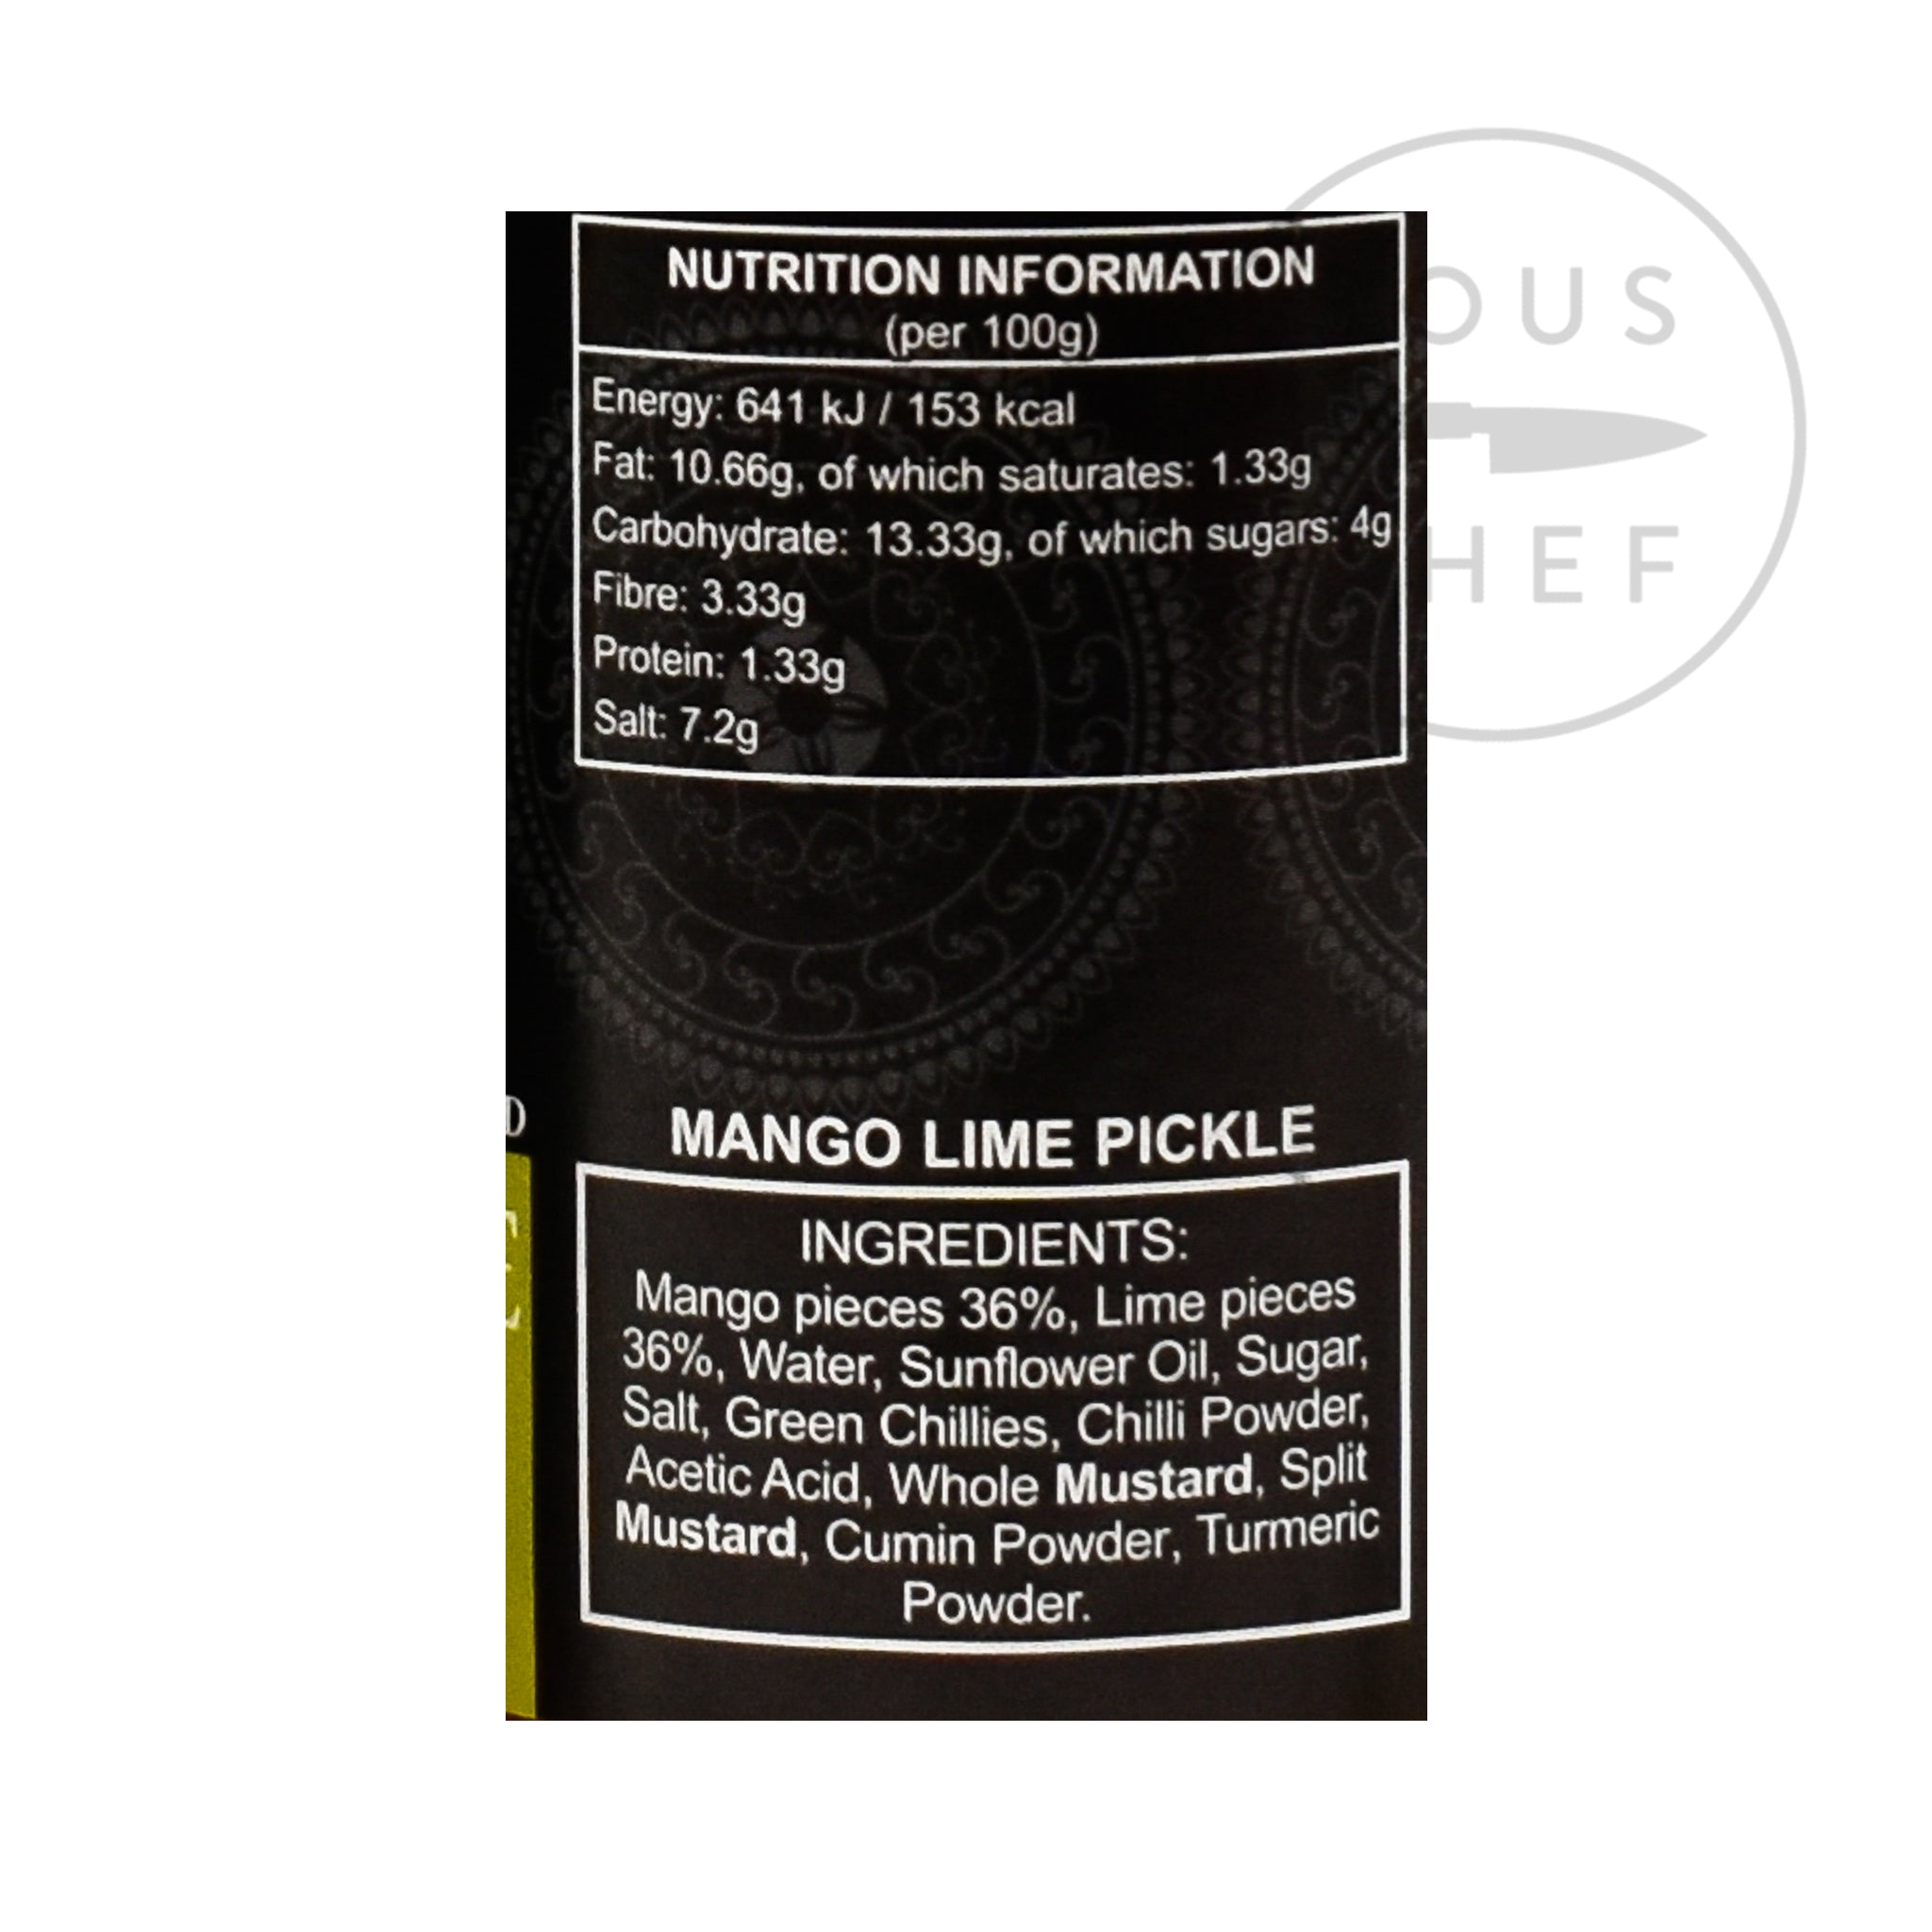 Ferns' Mango Lime Pickle 380g nutritional information ingredients